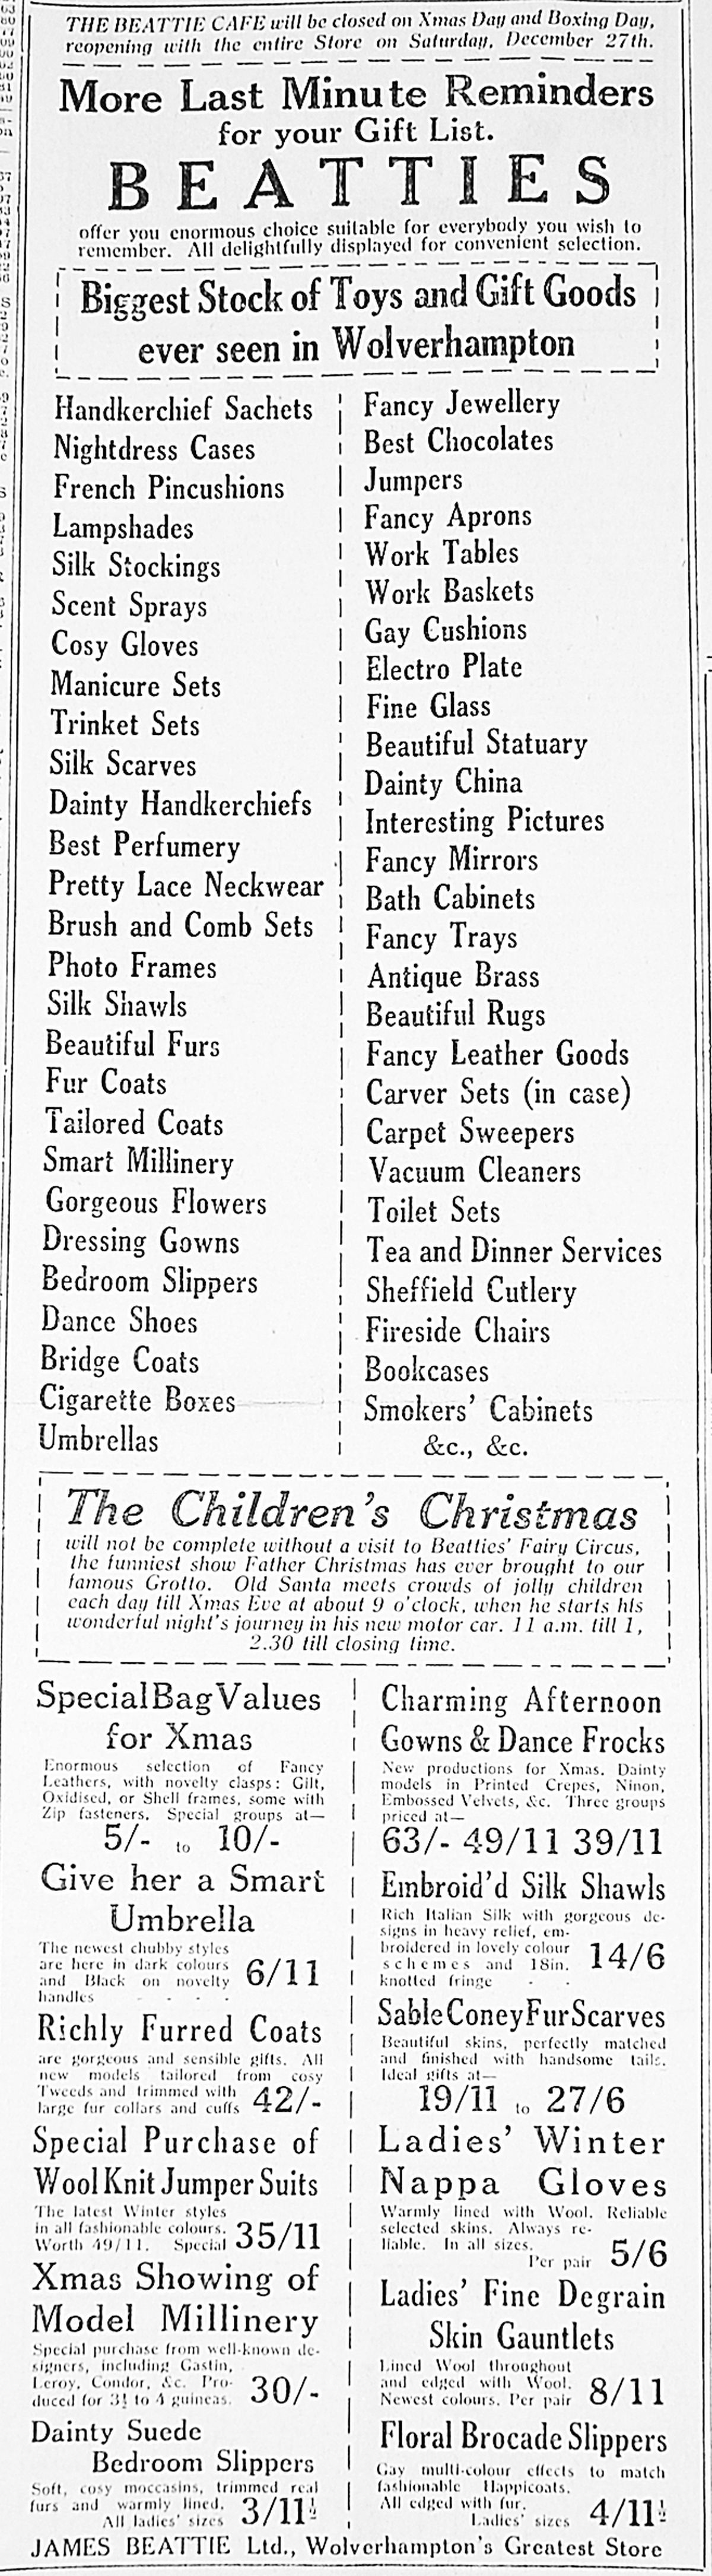 Christmas gift ideas from Beatties in Wolverhampton in 1930.